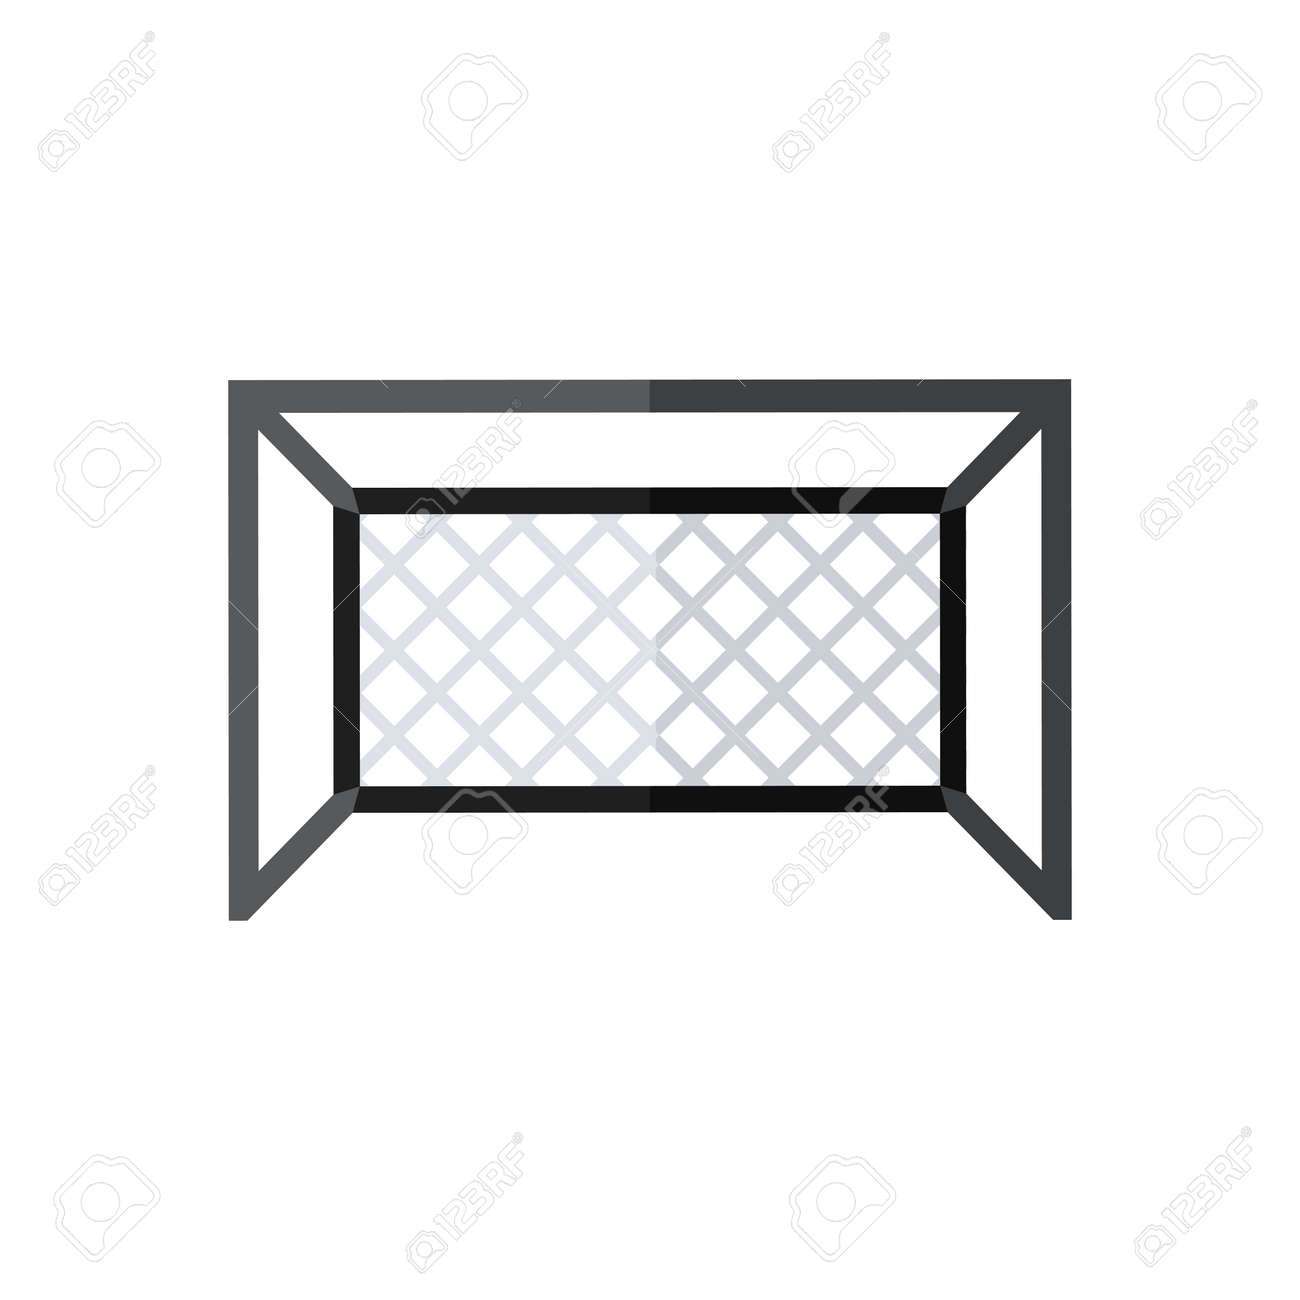 football goal silhouette vector soccer goal icon in flat style